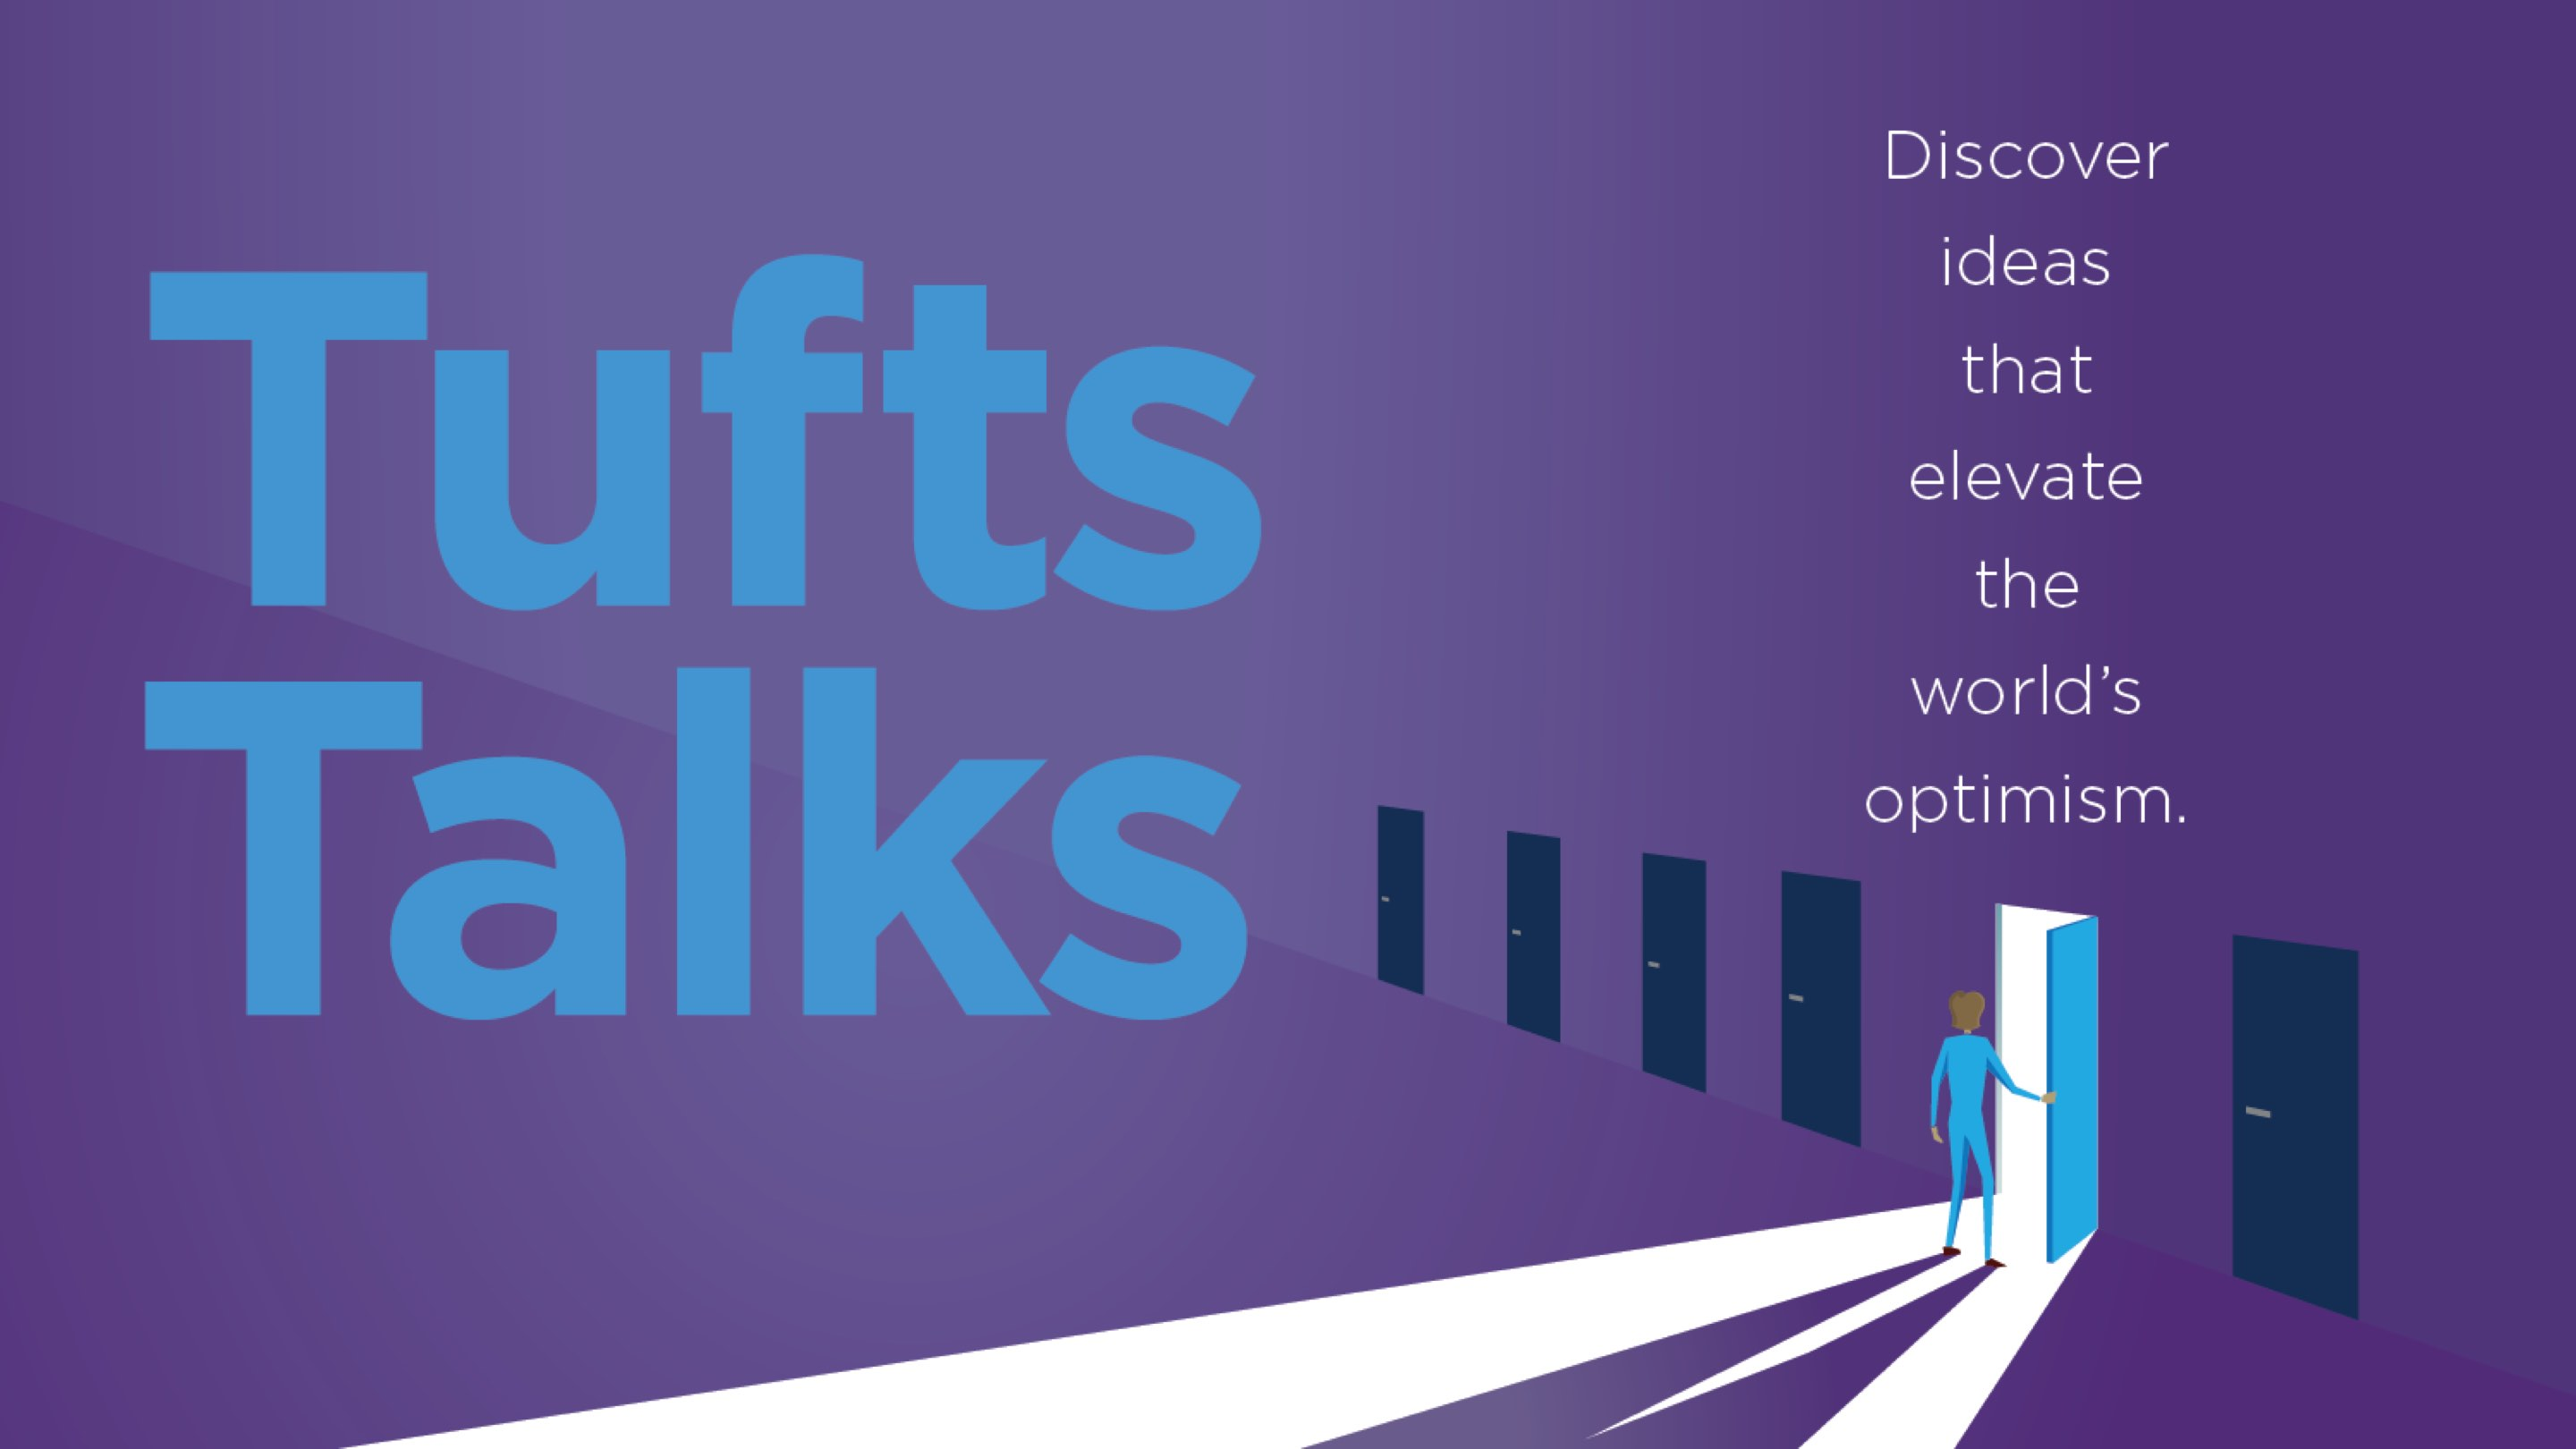 Tufts Talks - Discover ideas that elevate the world's optimism.